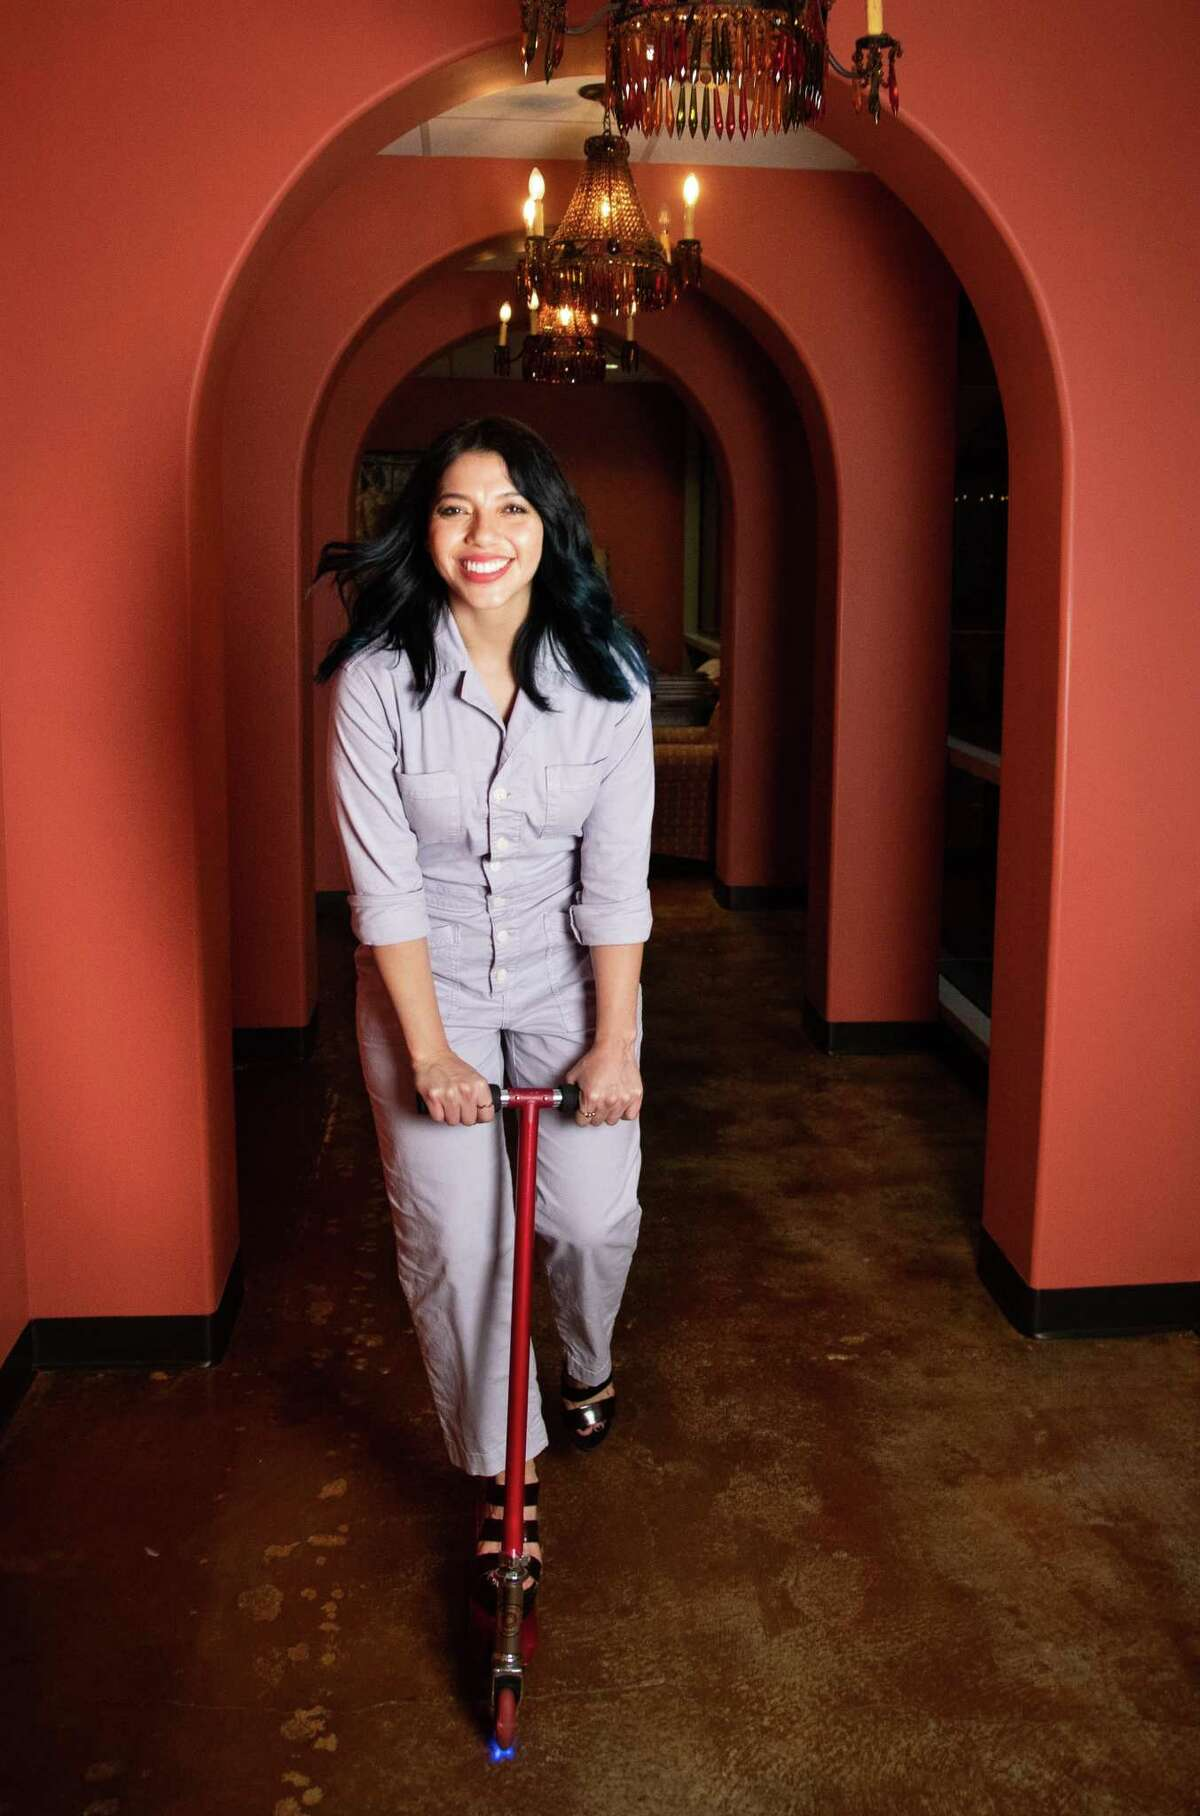 Lopez Negrete art director Karem García-Loera, 30, looks forward to the opportunity to work on the same space with her colleagues, Friday, April 30, 2021, in Houston.